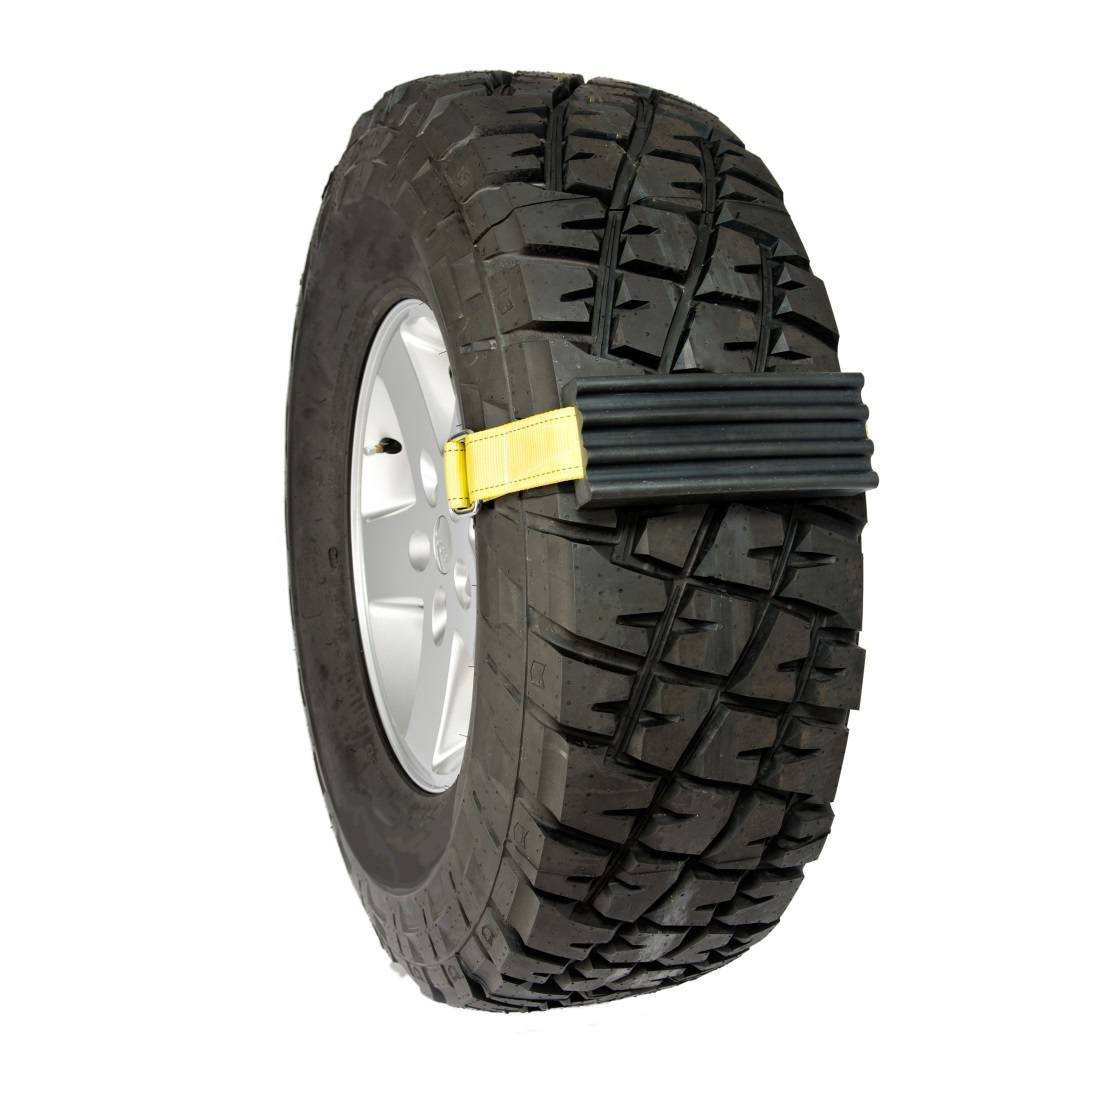 All Terrain Tires >> Trac-Grabber - Strap-On Tire Traction Blocks - The Green Head